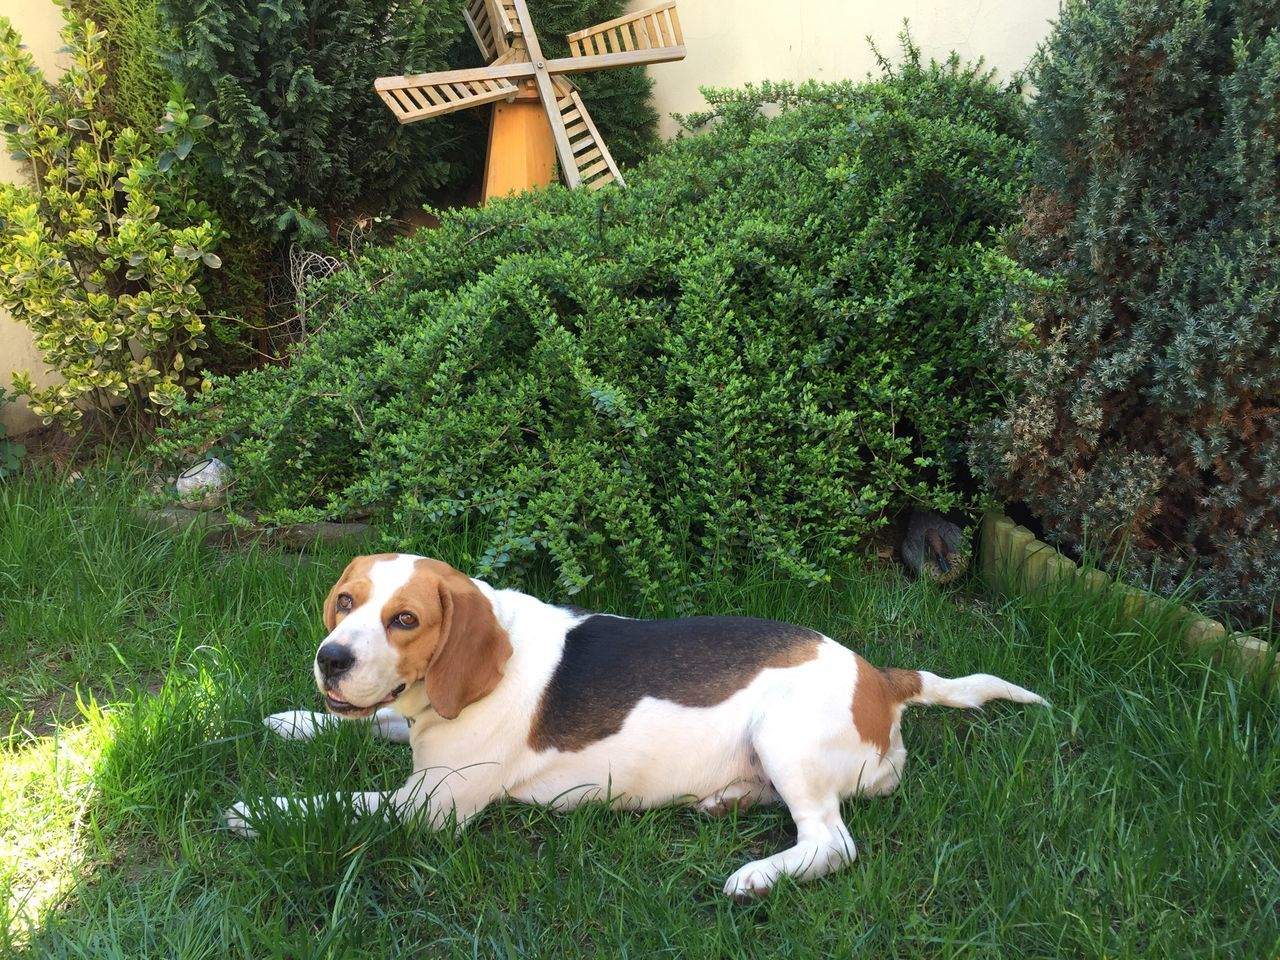 dog, pets, domestic animals, one animal, animal themes, grass, growth, mammal, day, green color, plant, nature, outdoors, no people, tree, beagle